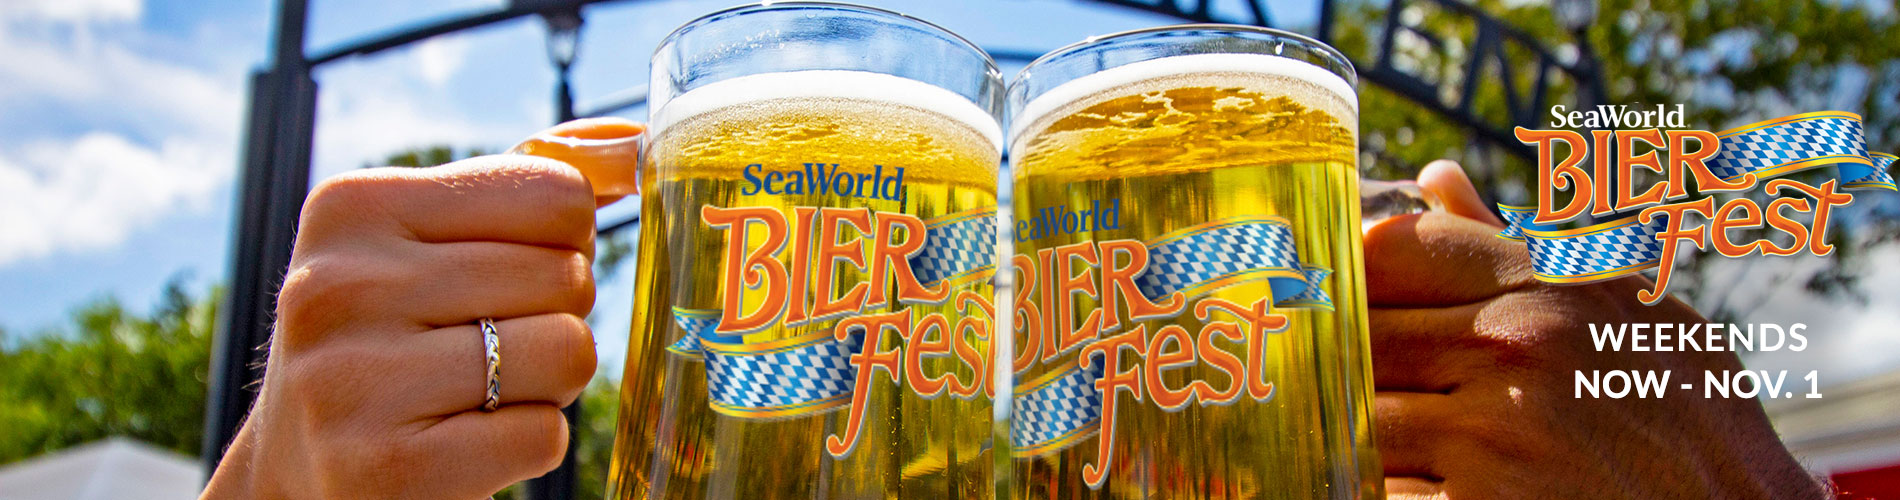 Bier Fest at SeaWorld San Antonio